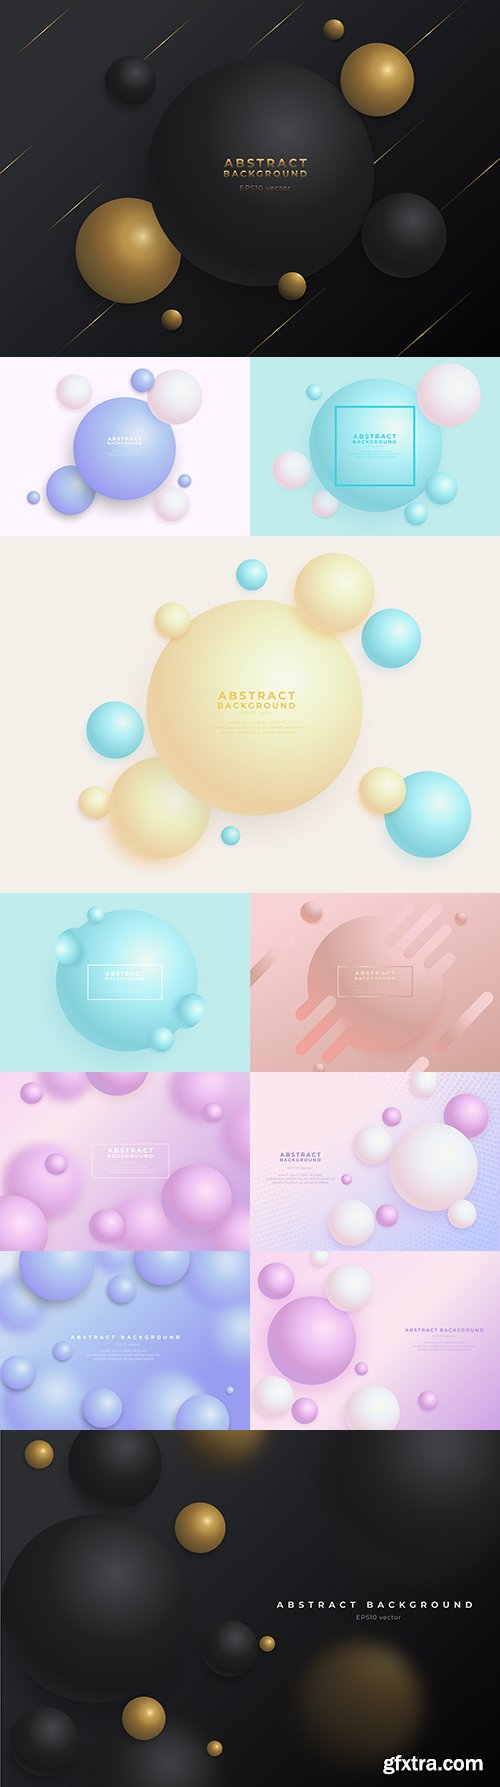 Gradient abstract background with 3d balls